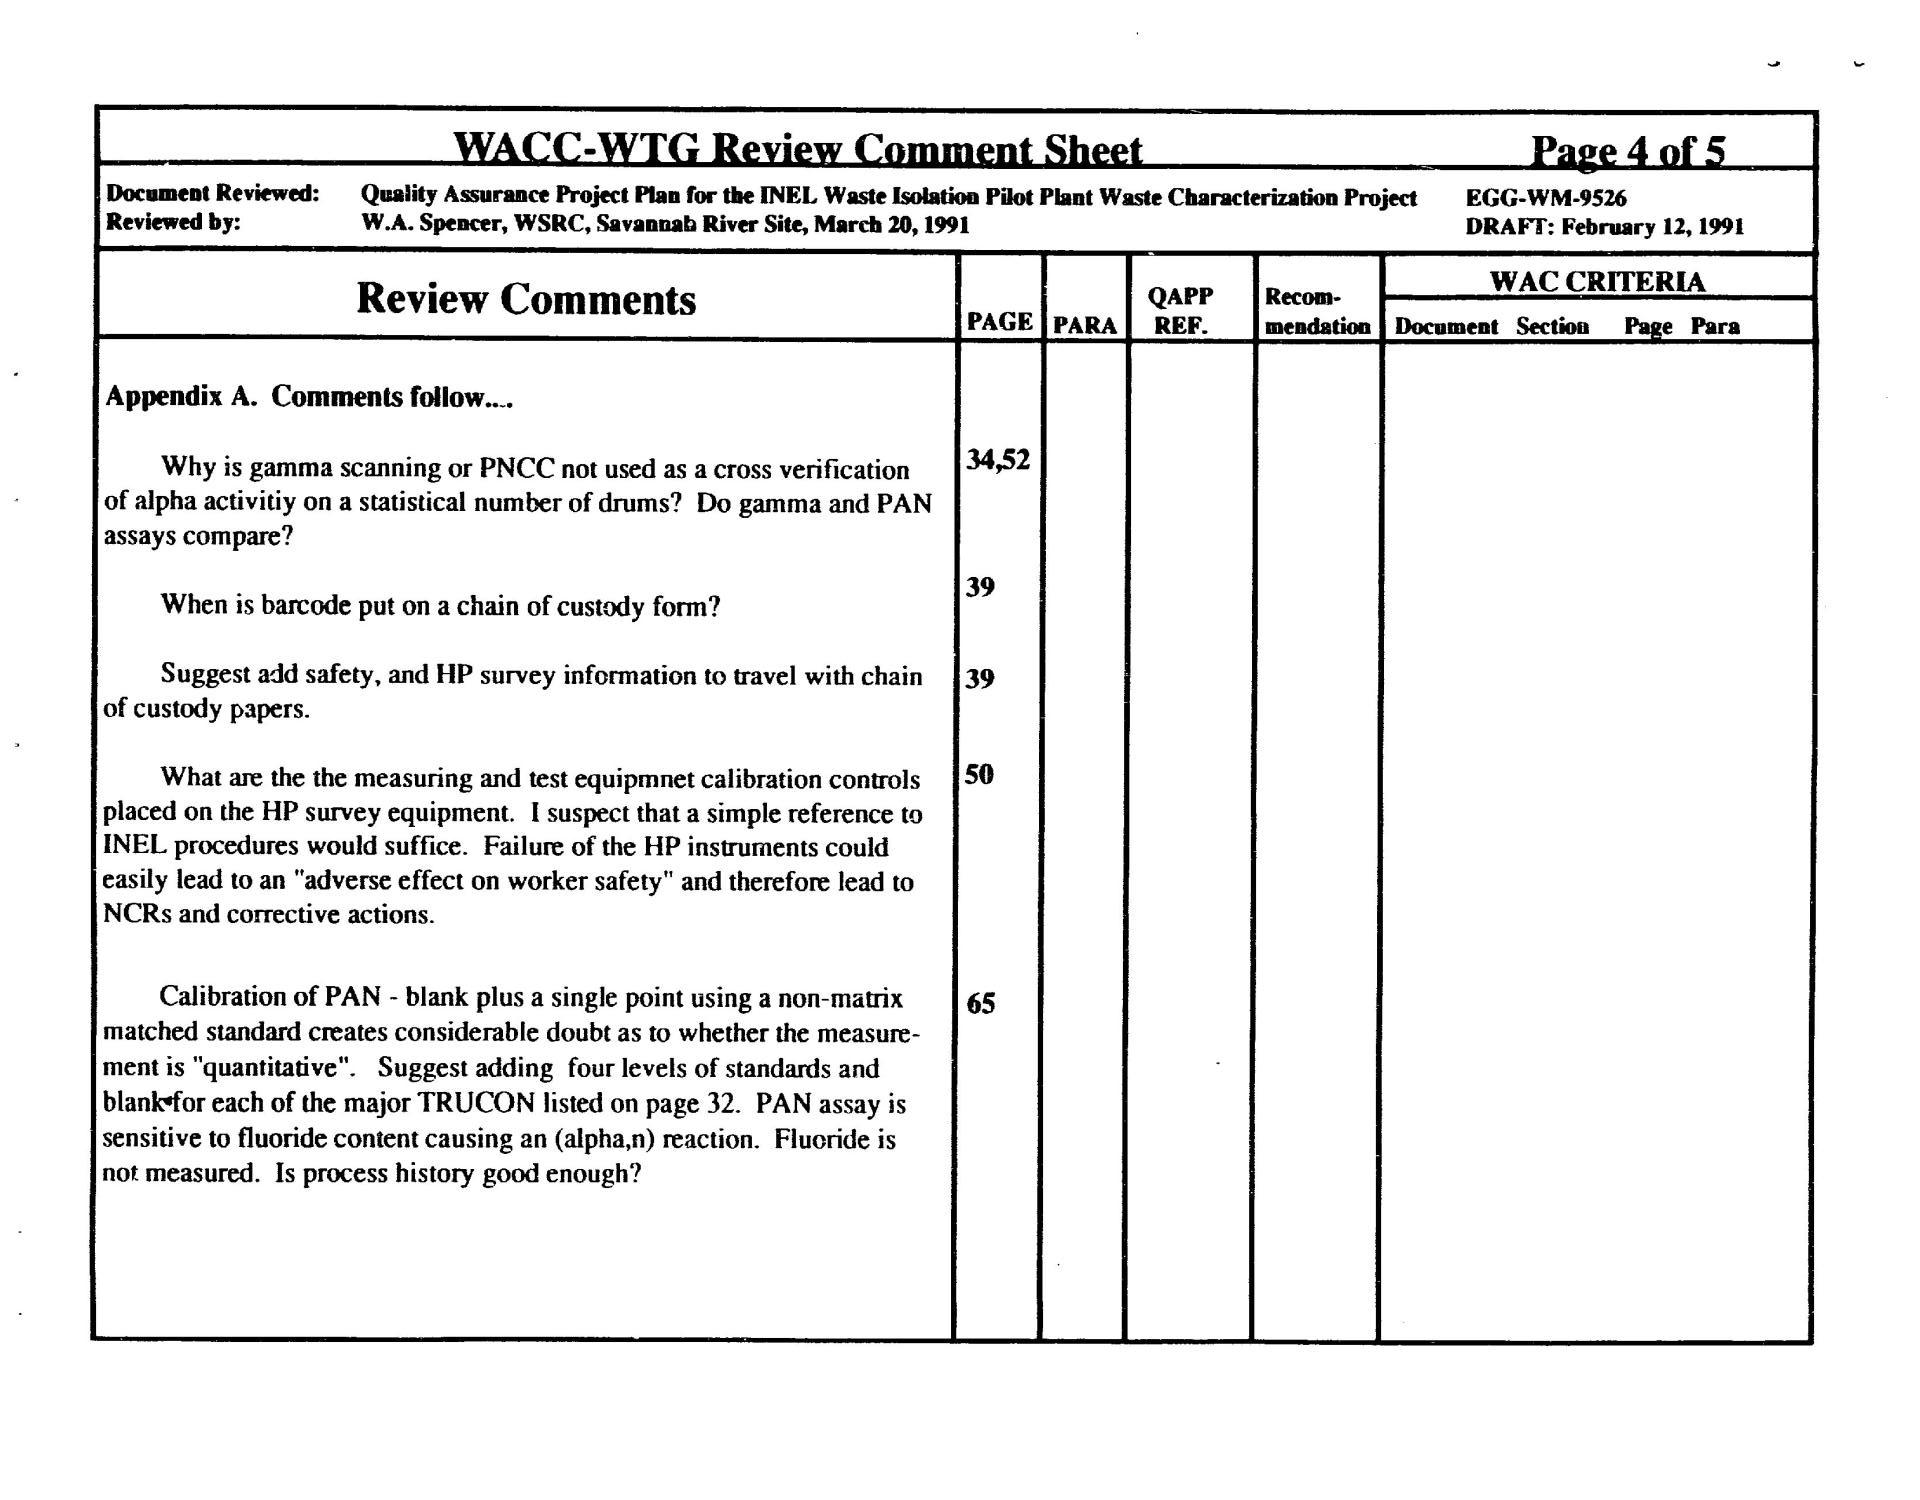 WACC-WTG Review Comment Sheets                                                                                                      [Sequence #]: 7 of 10